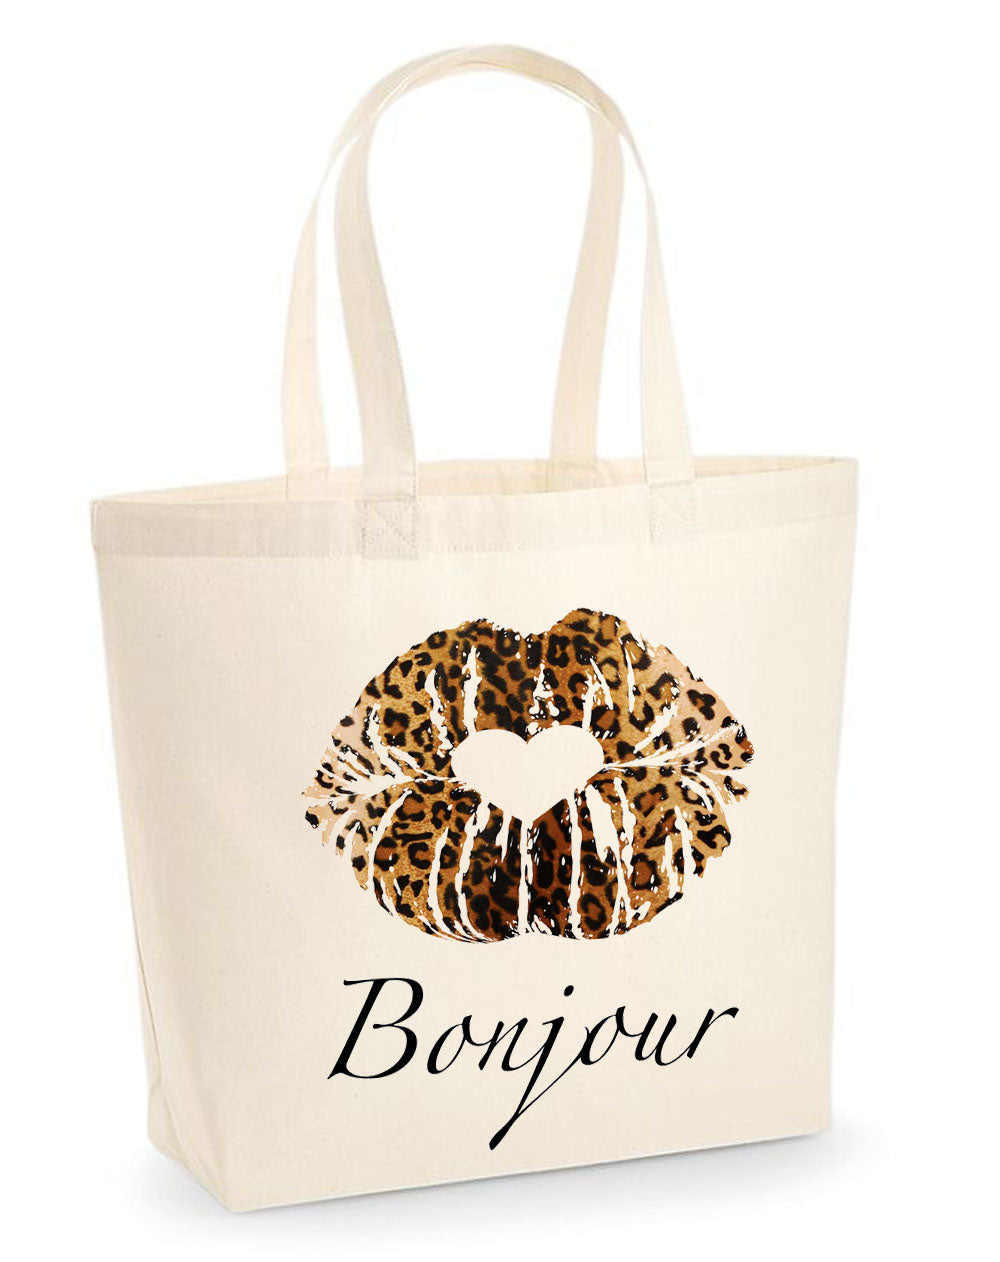 Bonjour leopard kiss tote bag in cream